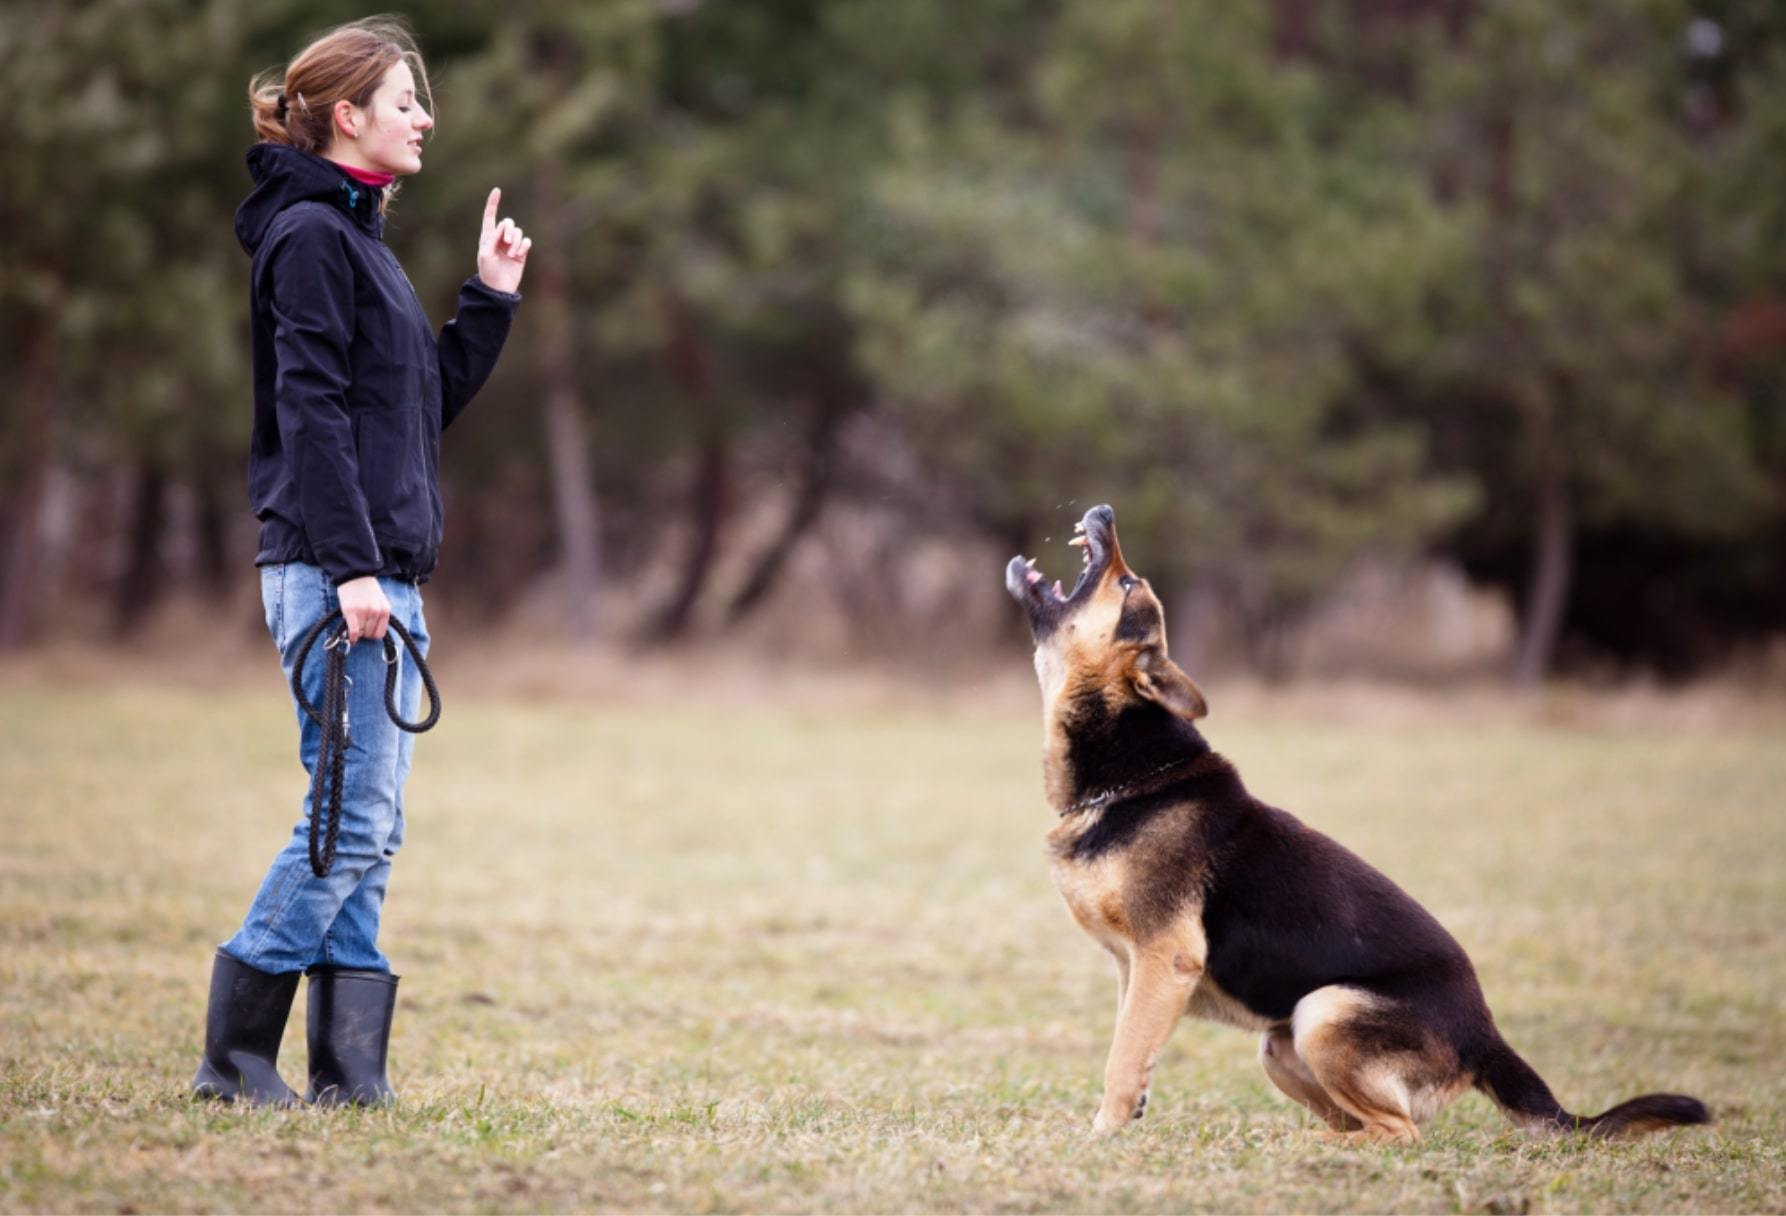 dog barking on command obedience training with owner dog training